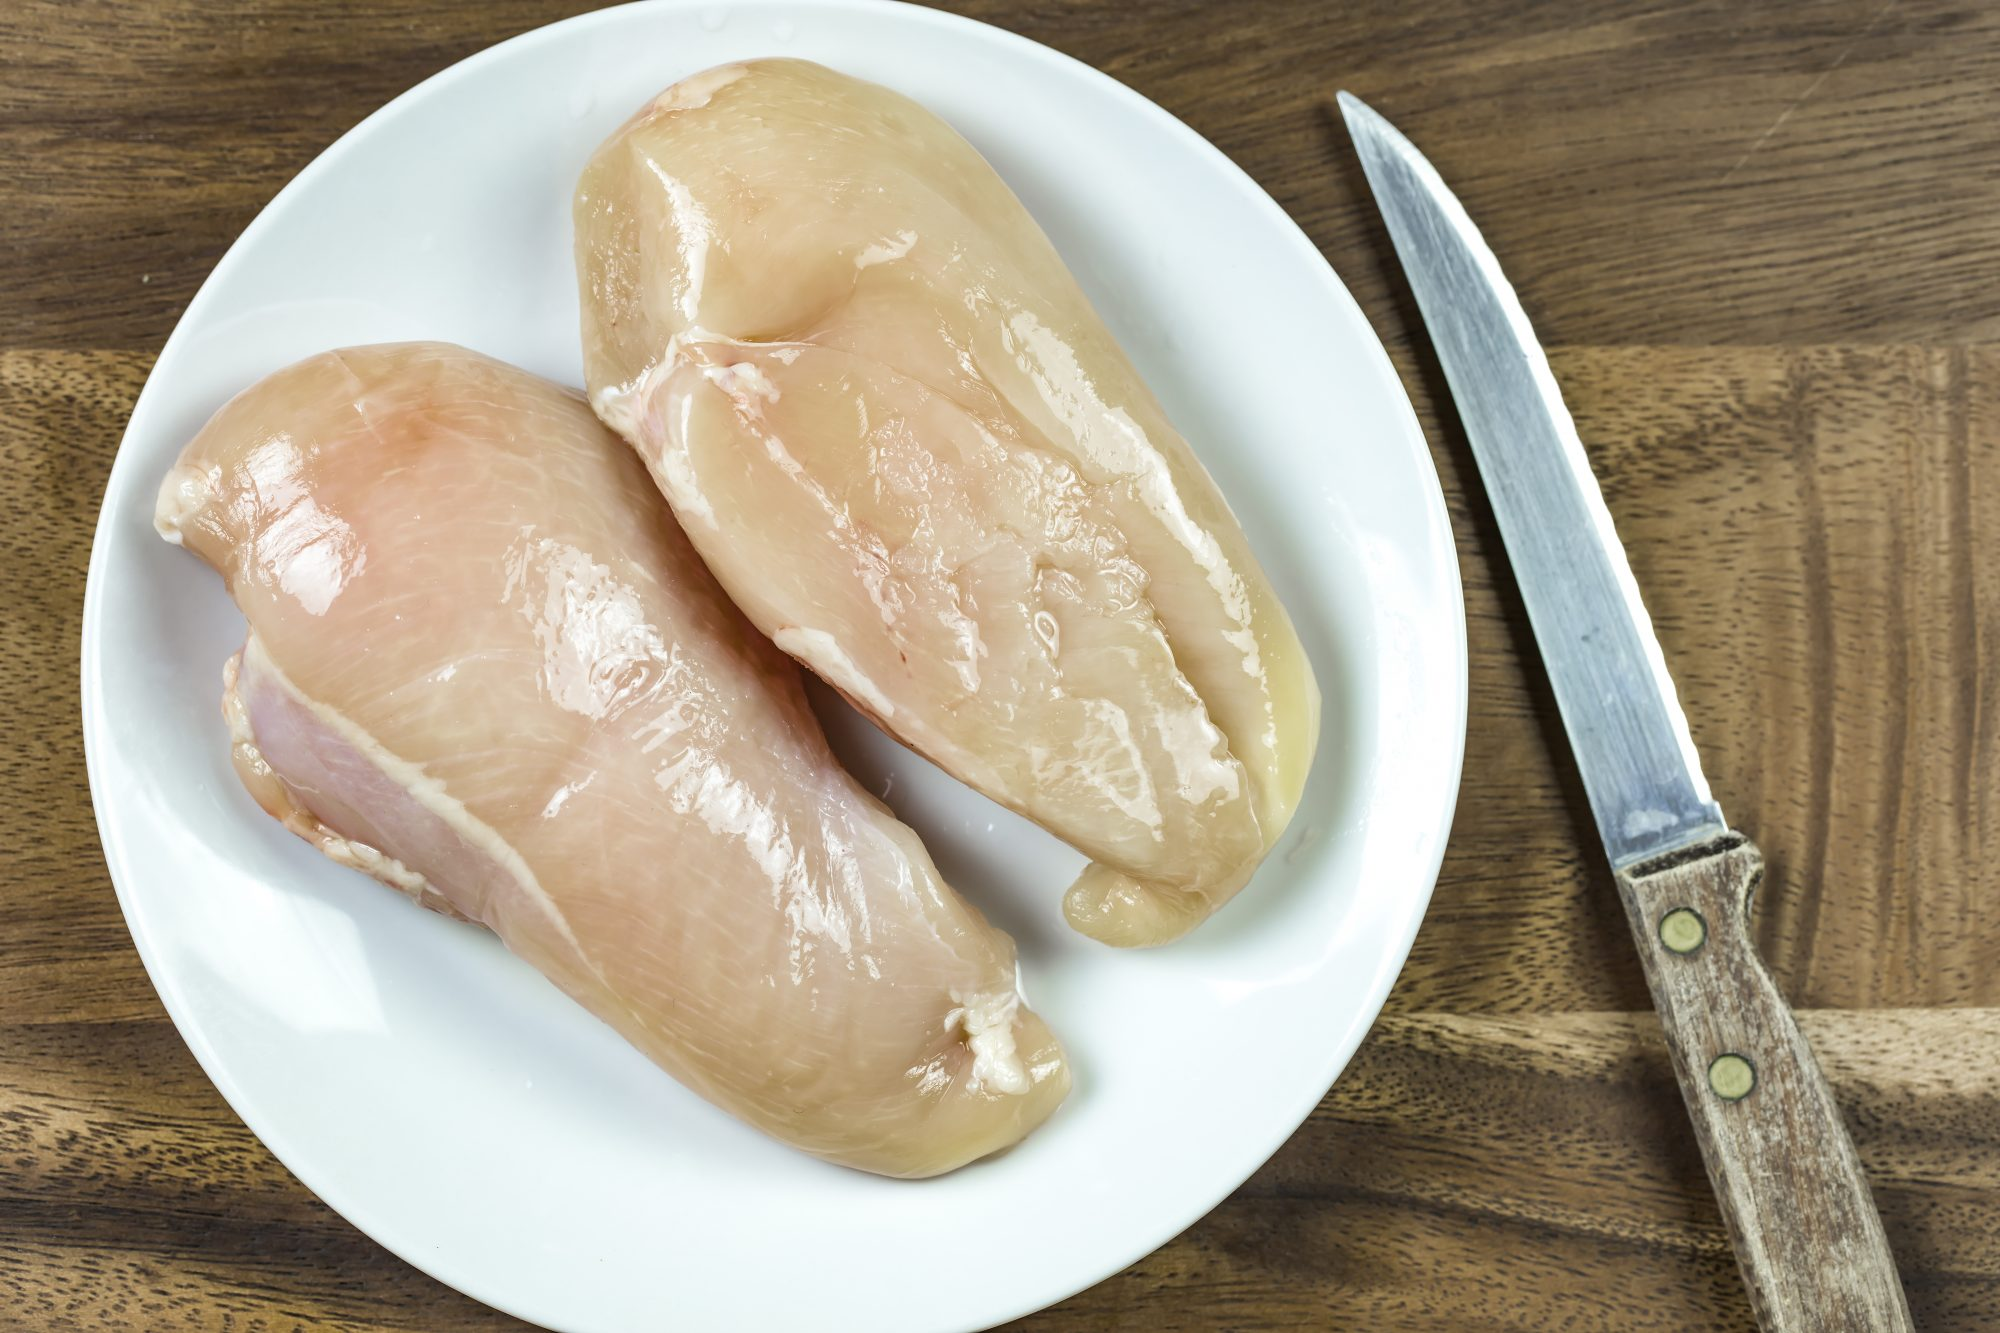 uncooked chicken